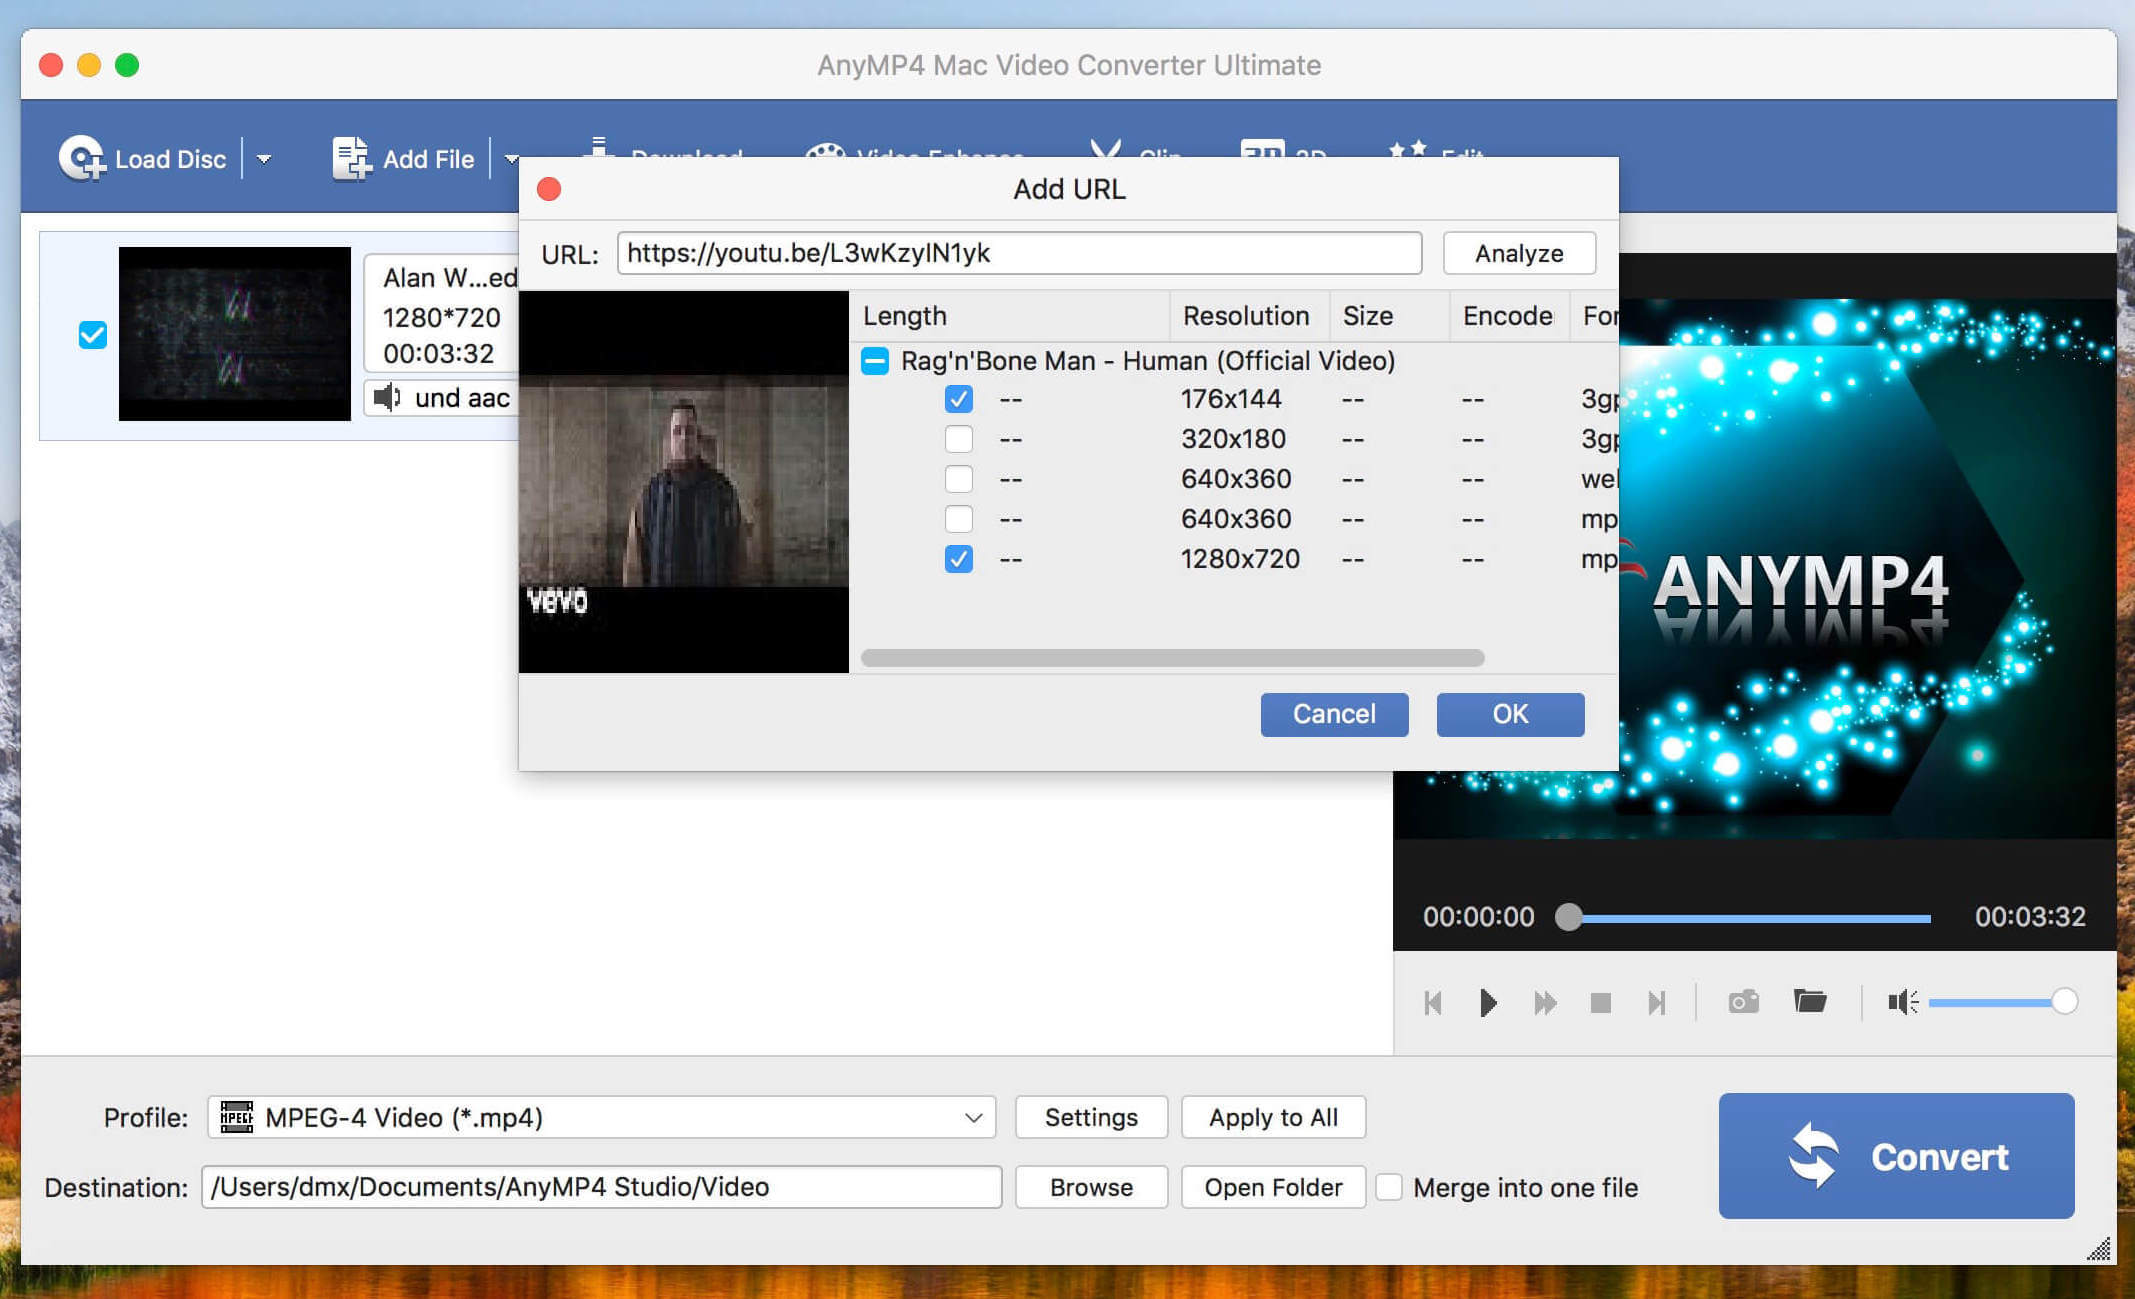 AnyMP4 Mac Video Converter Ultimate 8 2 16 | macOS Apps